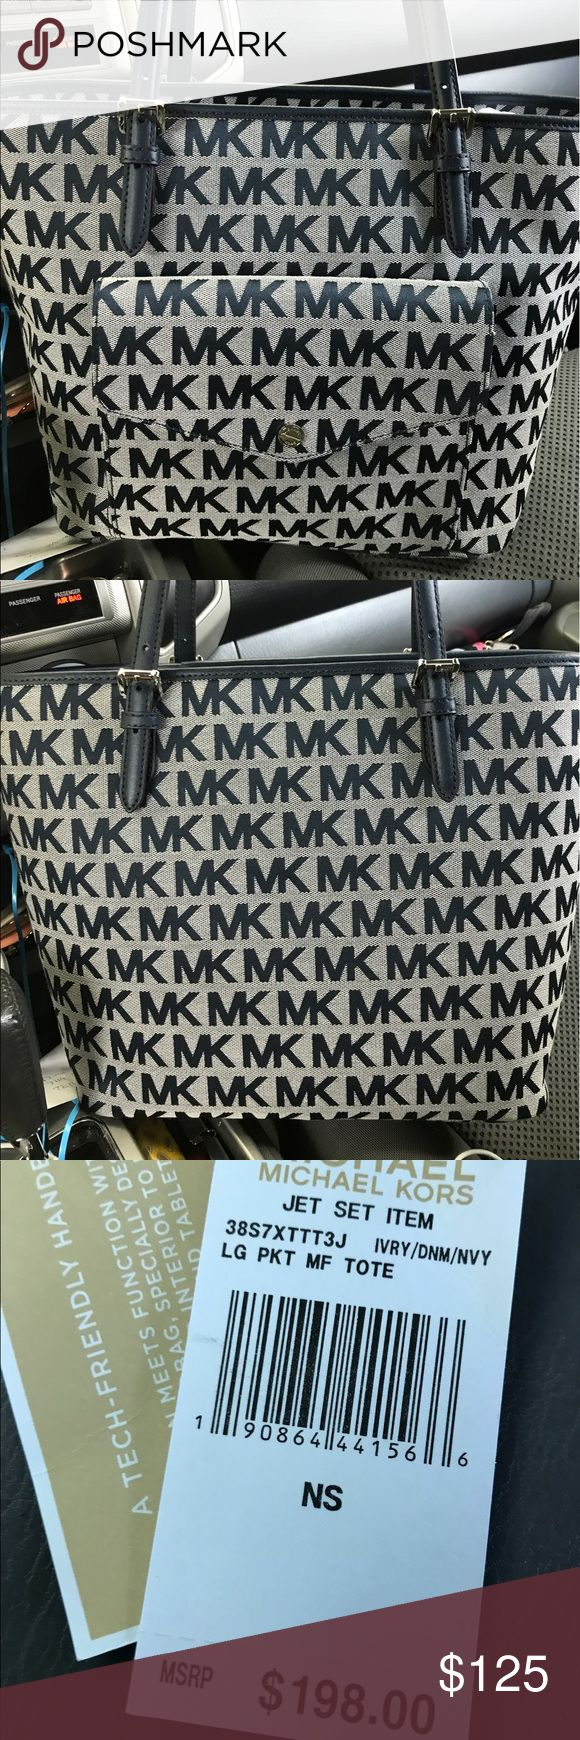 Michael Kors jet set large tote new with tags Michael Kors jet set large tote new with tags MICHAEL Michael Kors Bags Totes